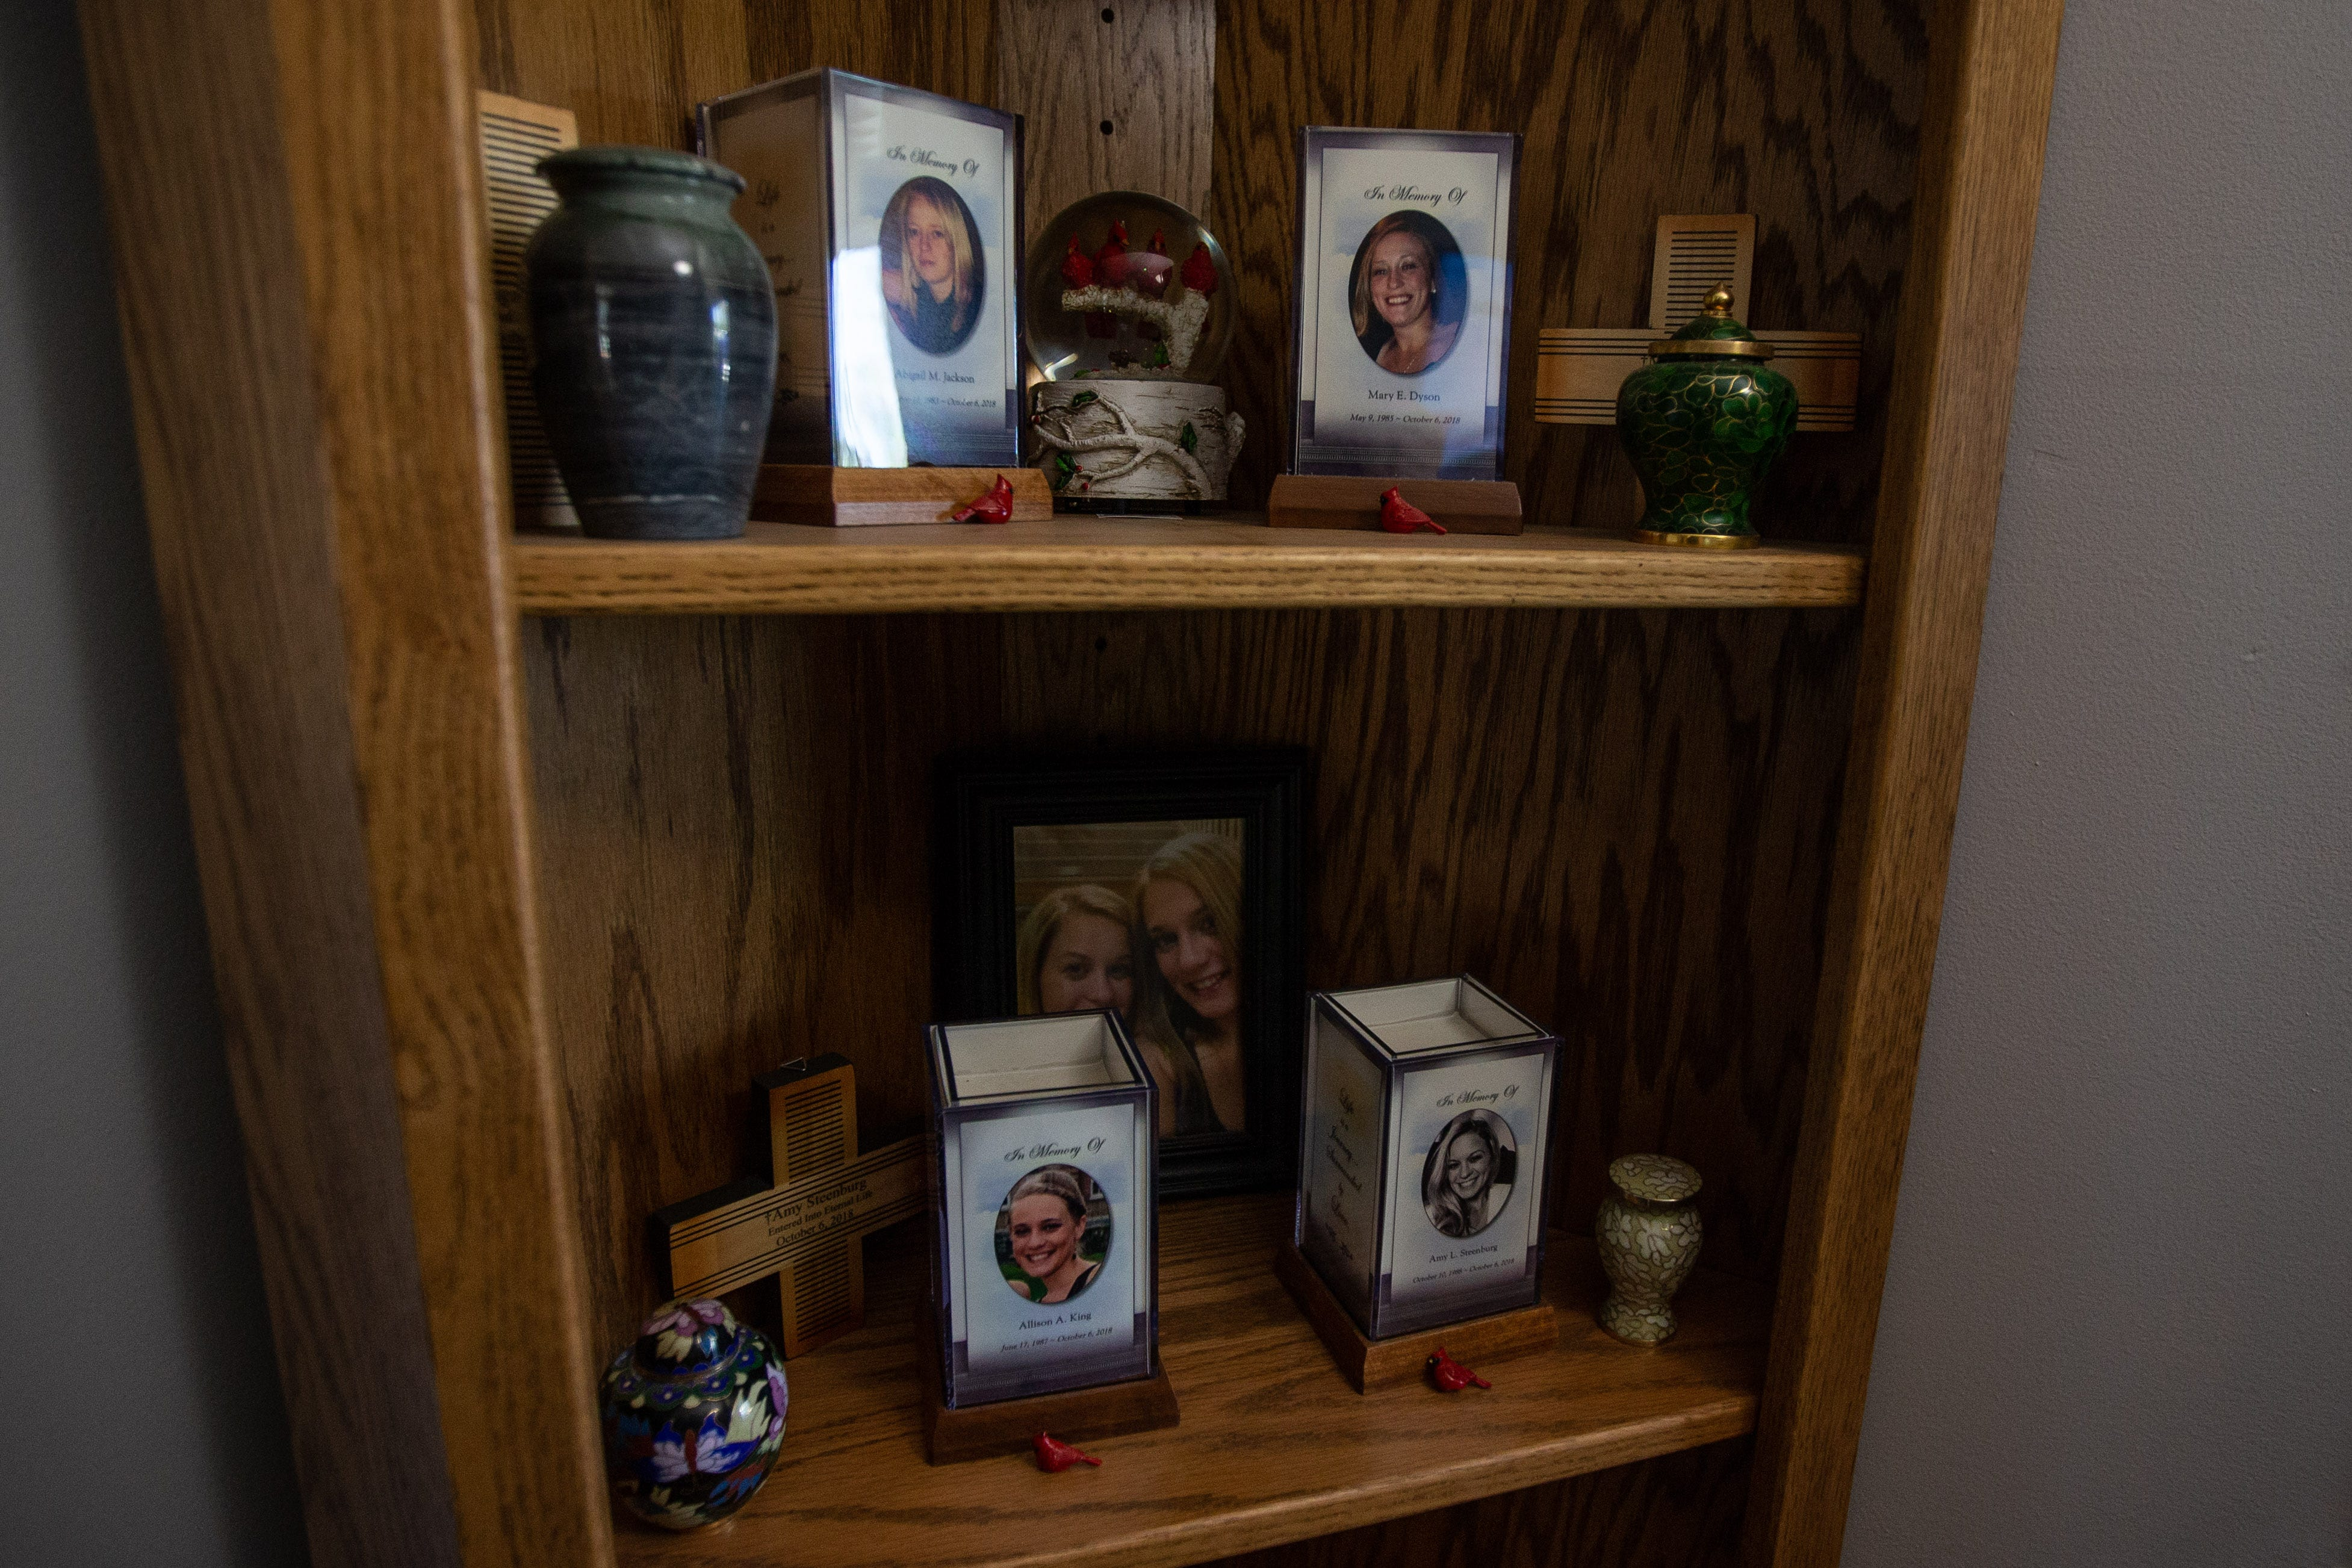 Four small urns are placed near photos of each one of Tom and Linda King's four daughters who died on Oct. 6, 2018 in the limousine crash in Schoharie, New York. The curio cabinet is nestled in the livingroom of the Kings' home in Amsterdam, New York, and is a small, modest memorial honoring their daughters: Abigail Jackson, Mary Dyson, Allison King and Amy Steenburg.